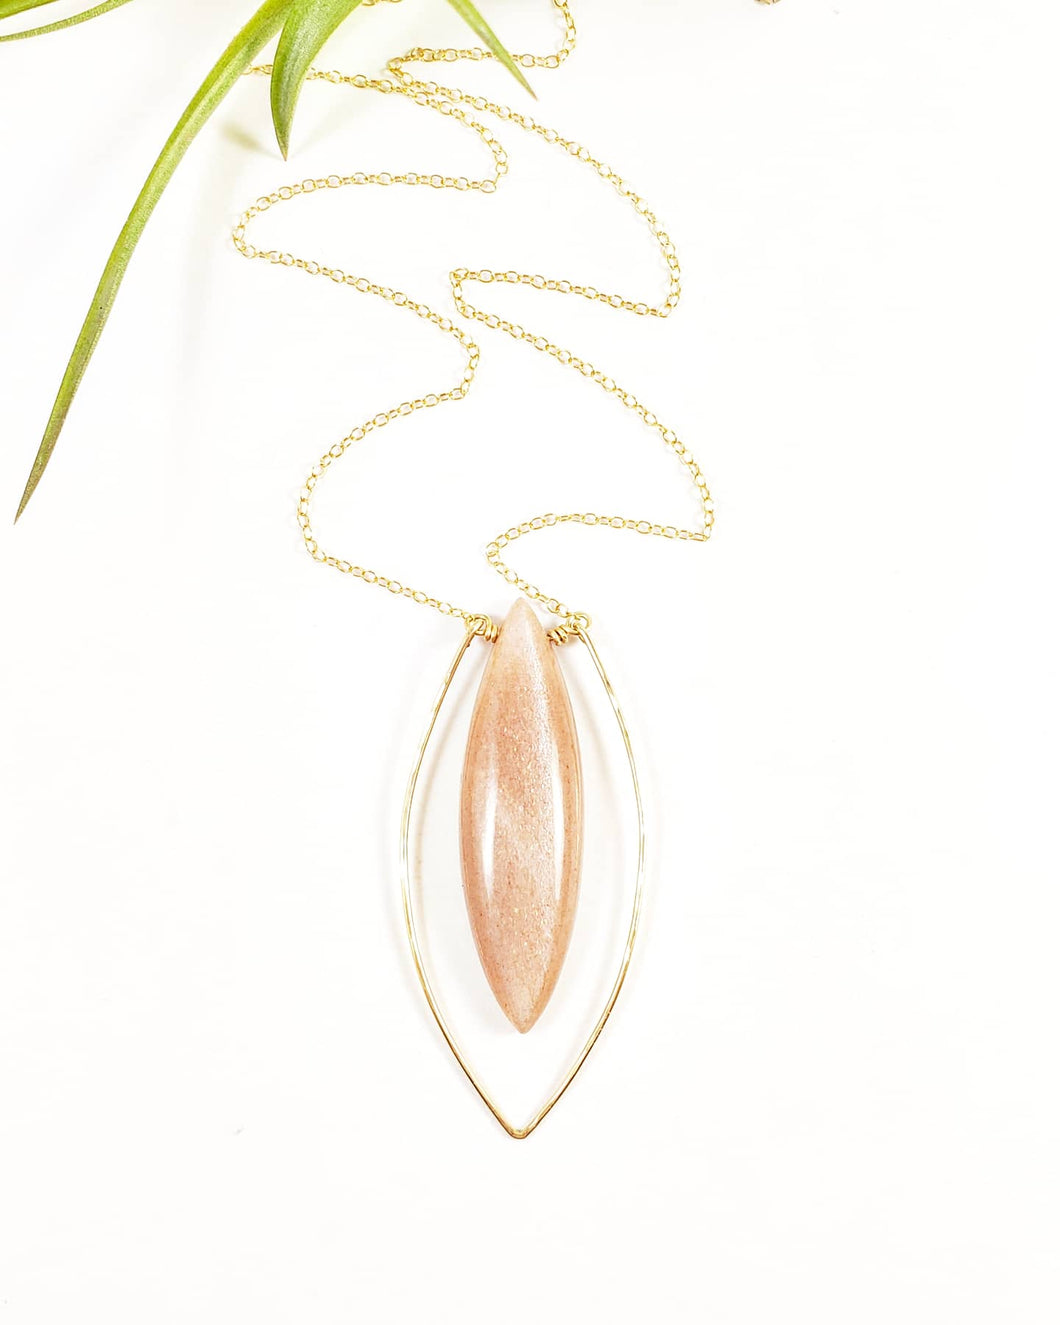 Rose Moonstone framed in 14k gold on gold chain necklace Handmade Jewelry -Shay D. Design